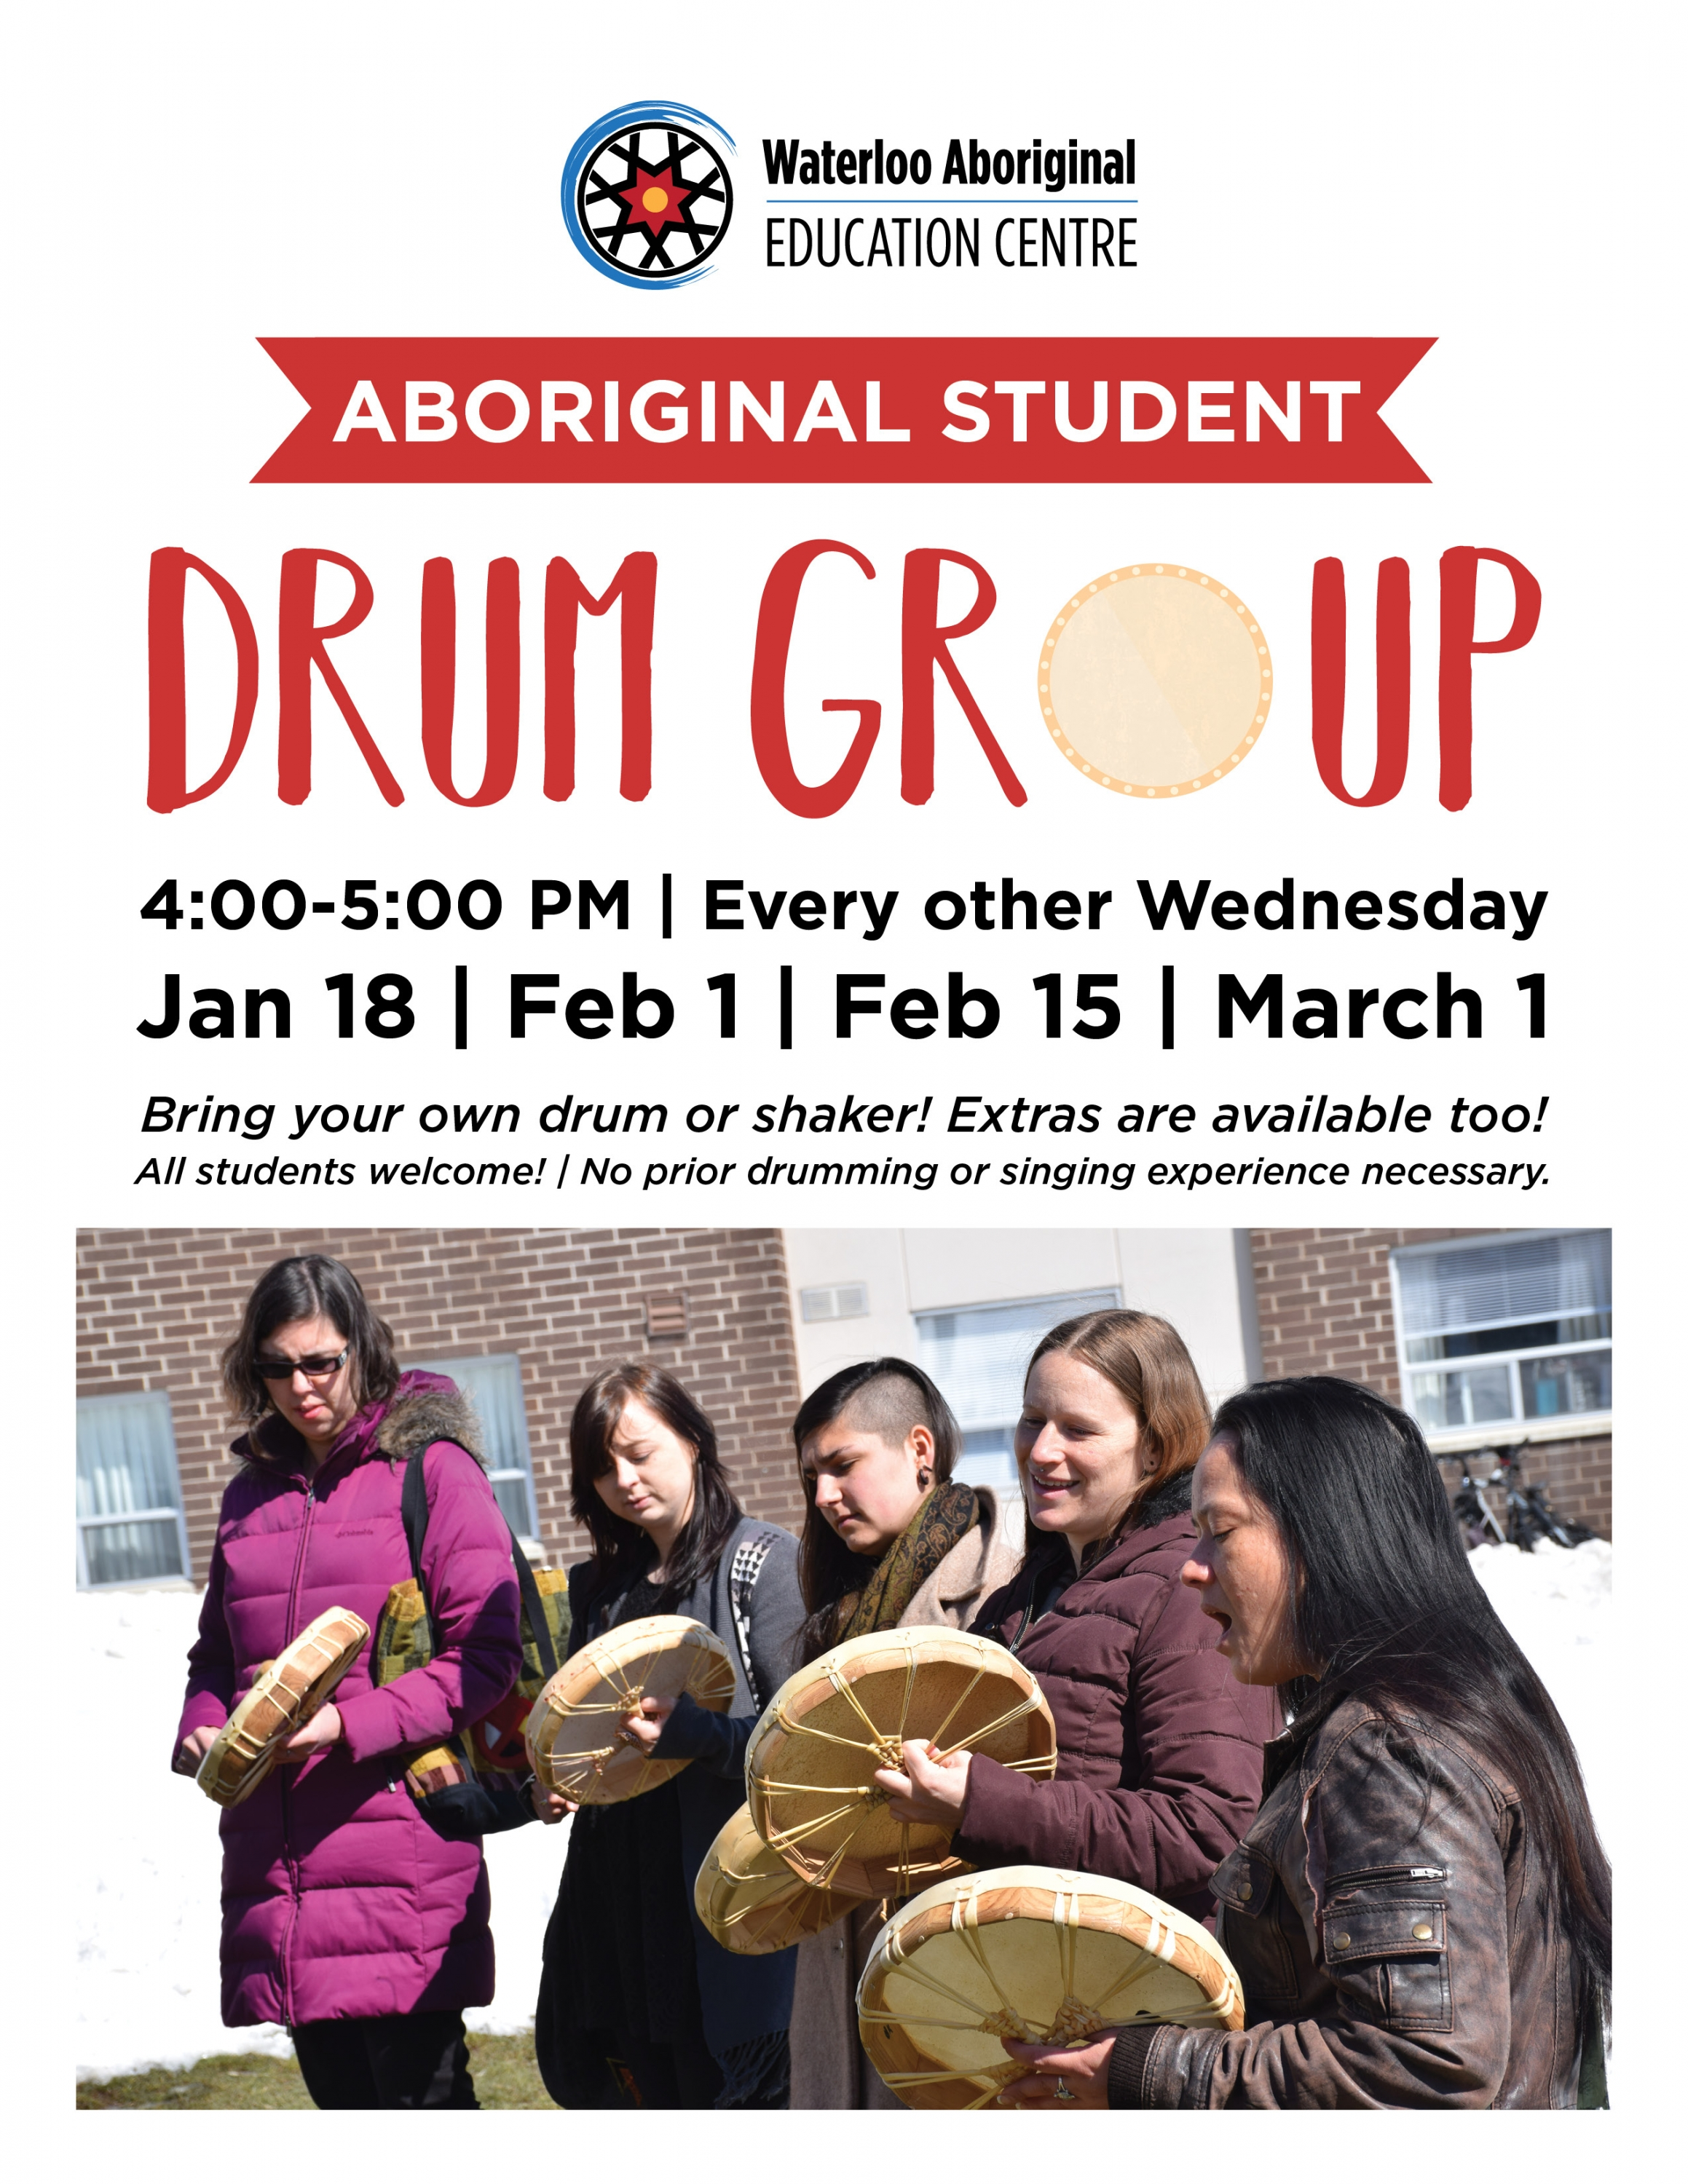 Drum Group poster with image of 5 women drumming outdoors